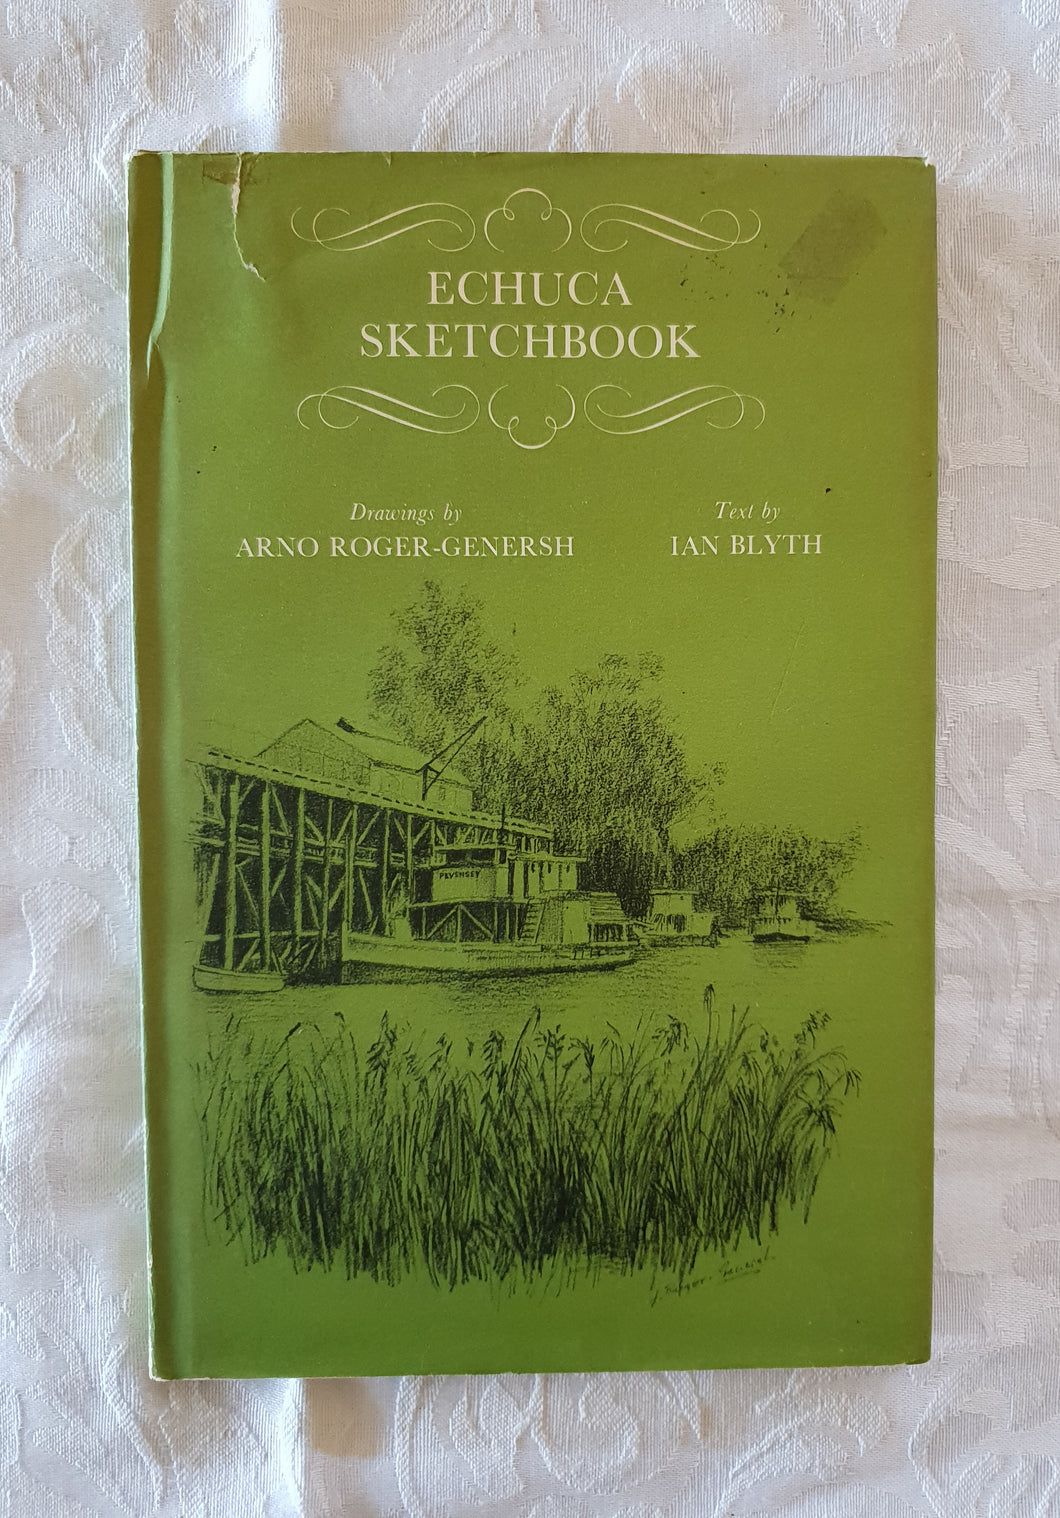 Echuca Sketchbook by Arno Roger-Genersh and Ian Blyth